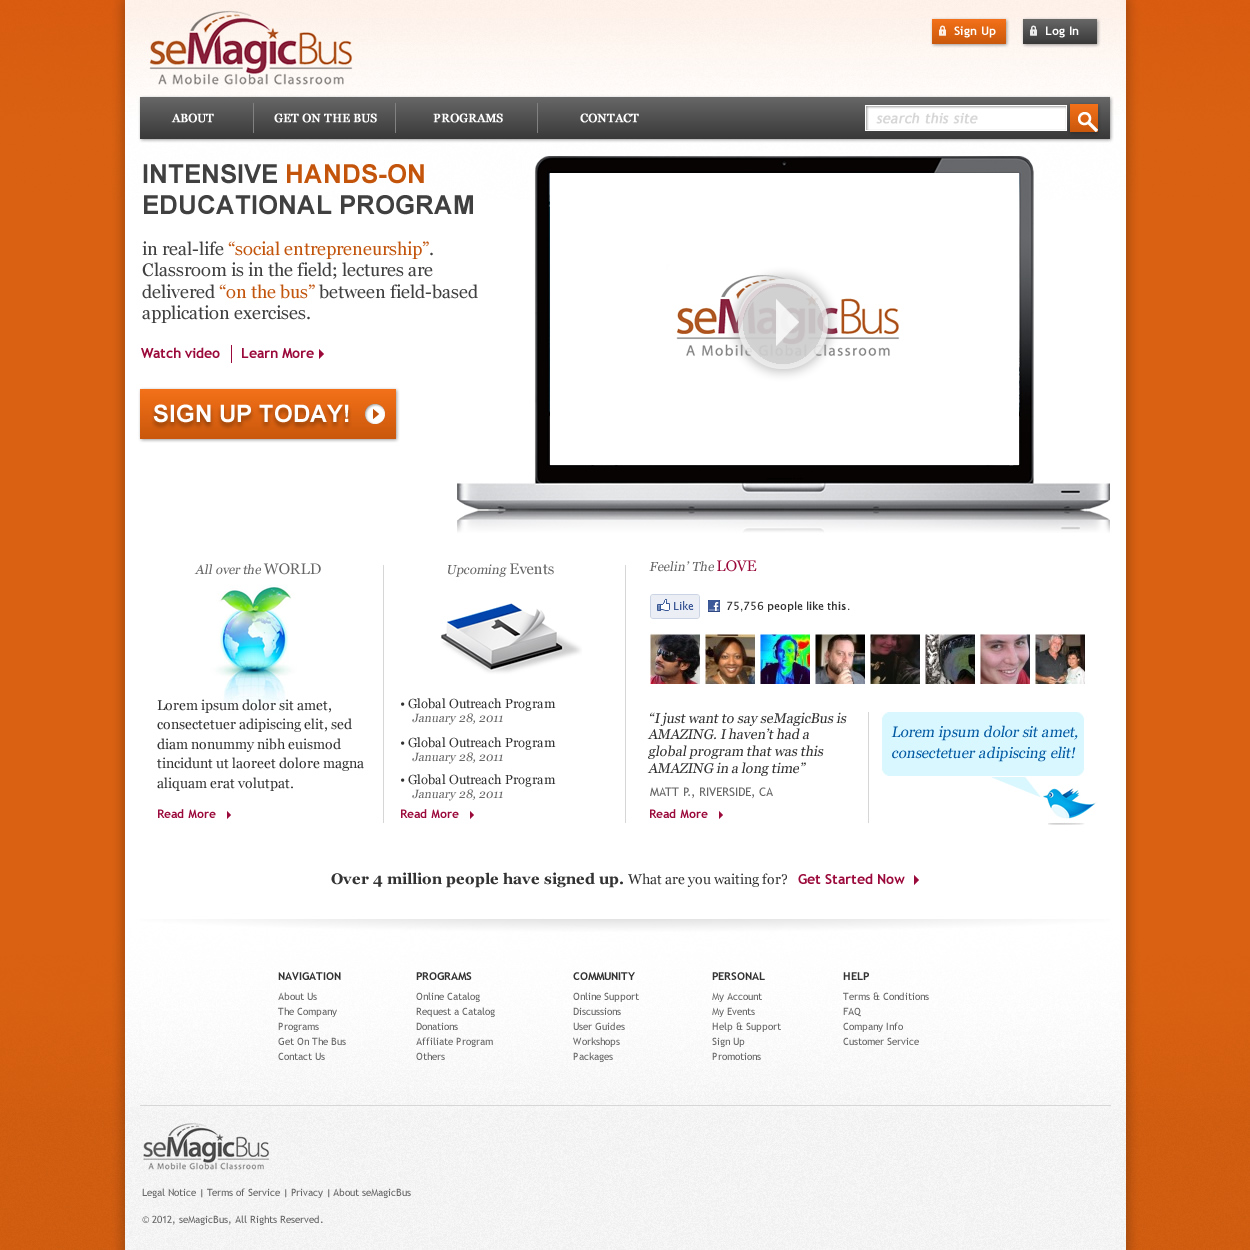 Web Page Design by johngabriel - Entry No. 23 in the Web Page Design Contest seMagicBus Website.